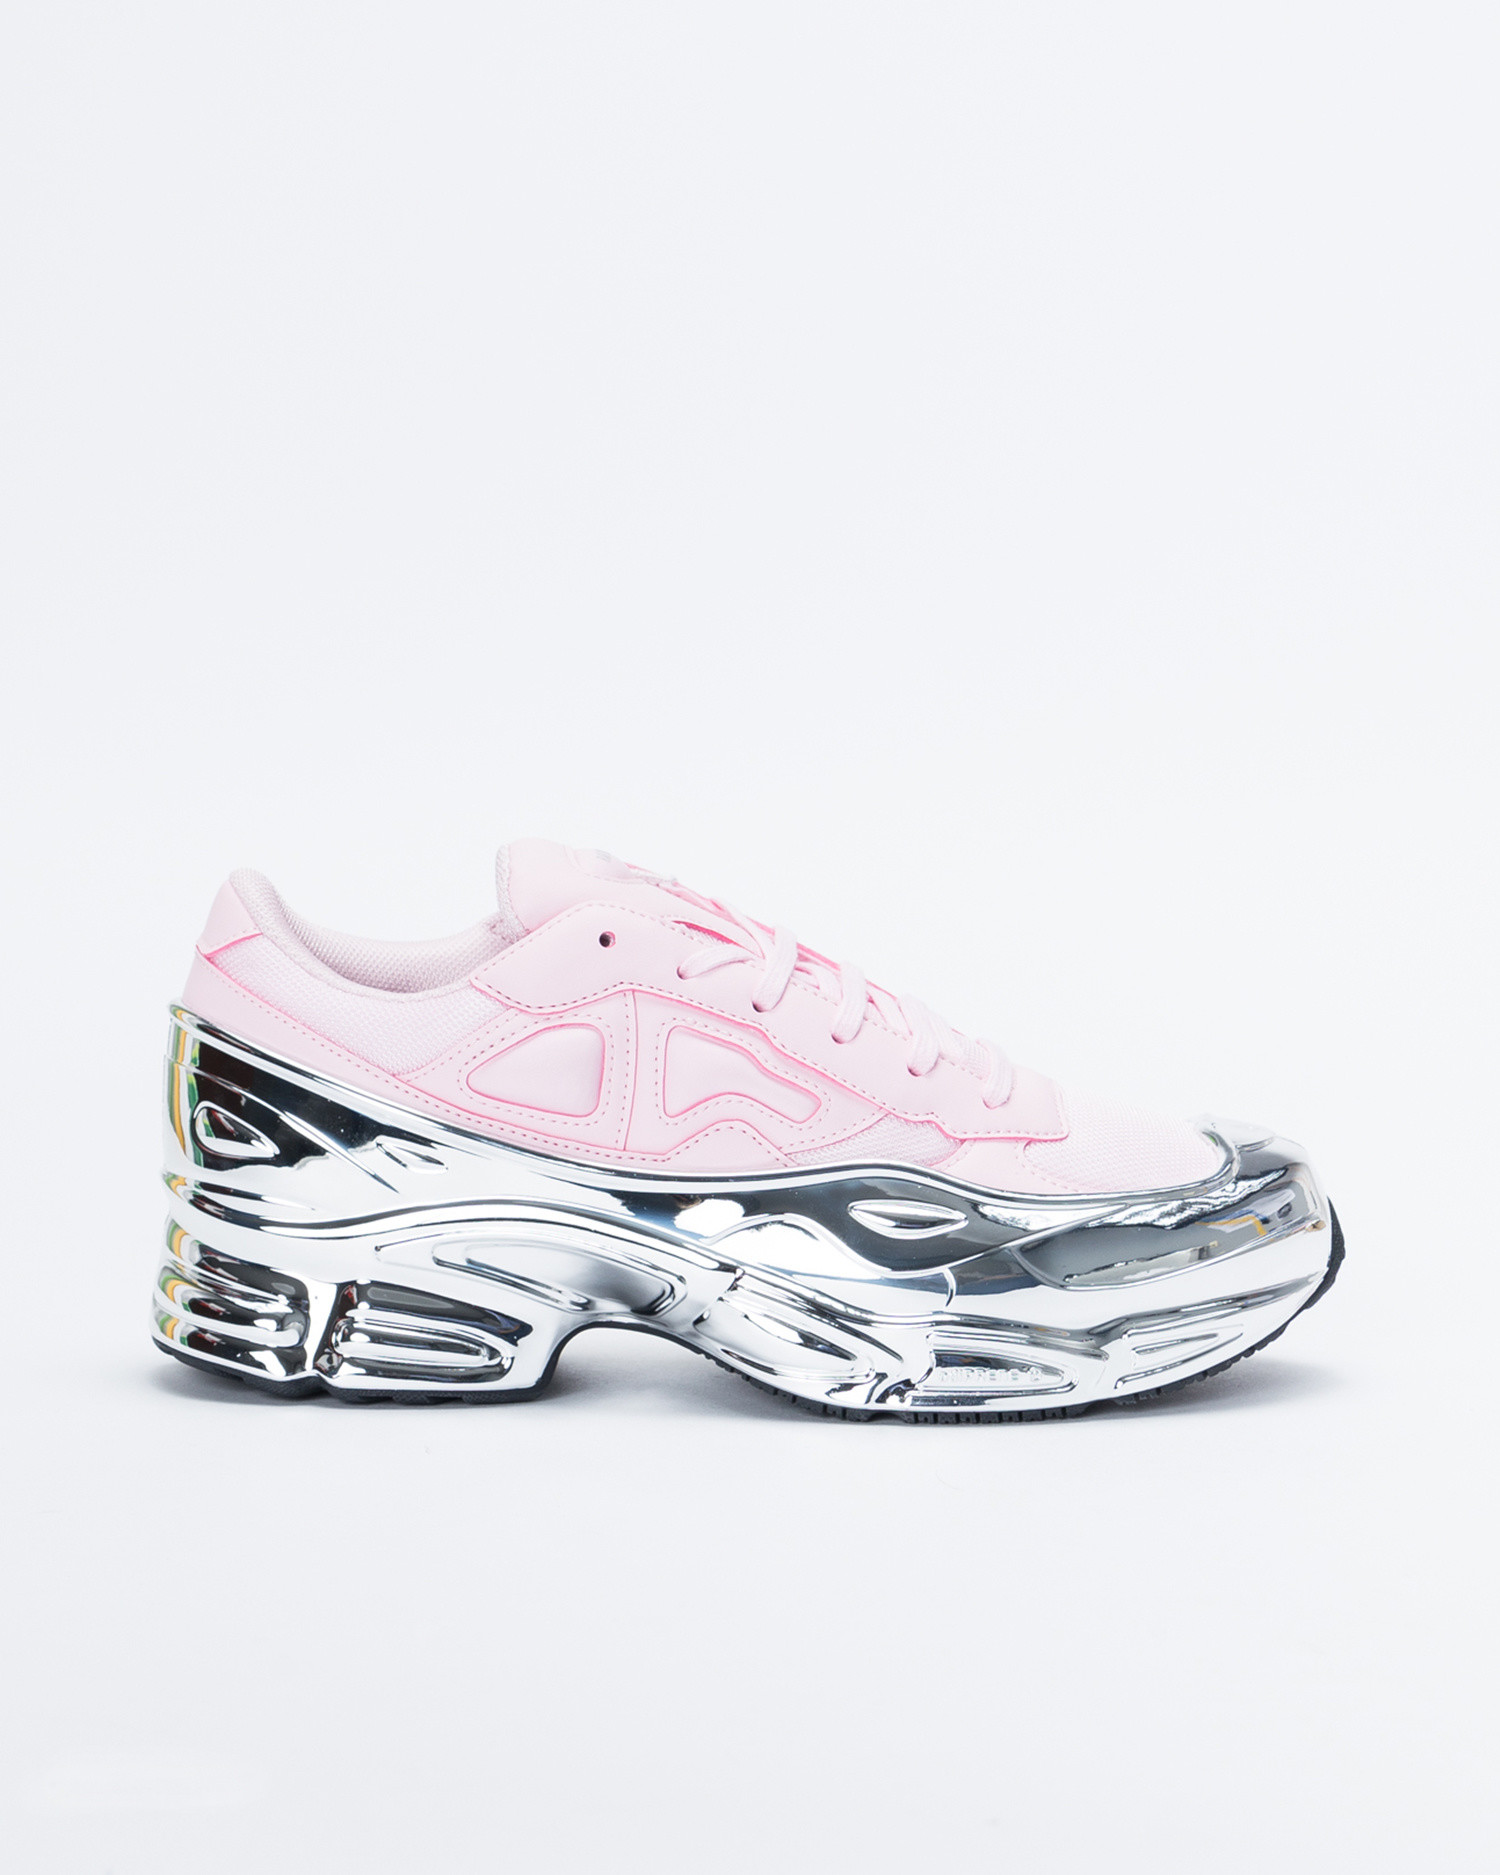 newest fc38b 9aacf Adidas Raf Simons Ozweego Cpink/Silvmt/Silvmt